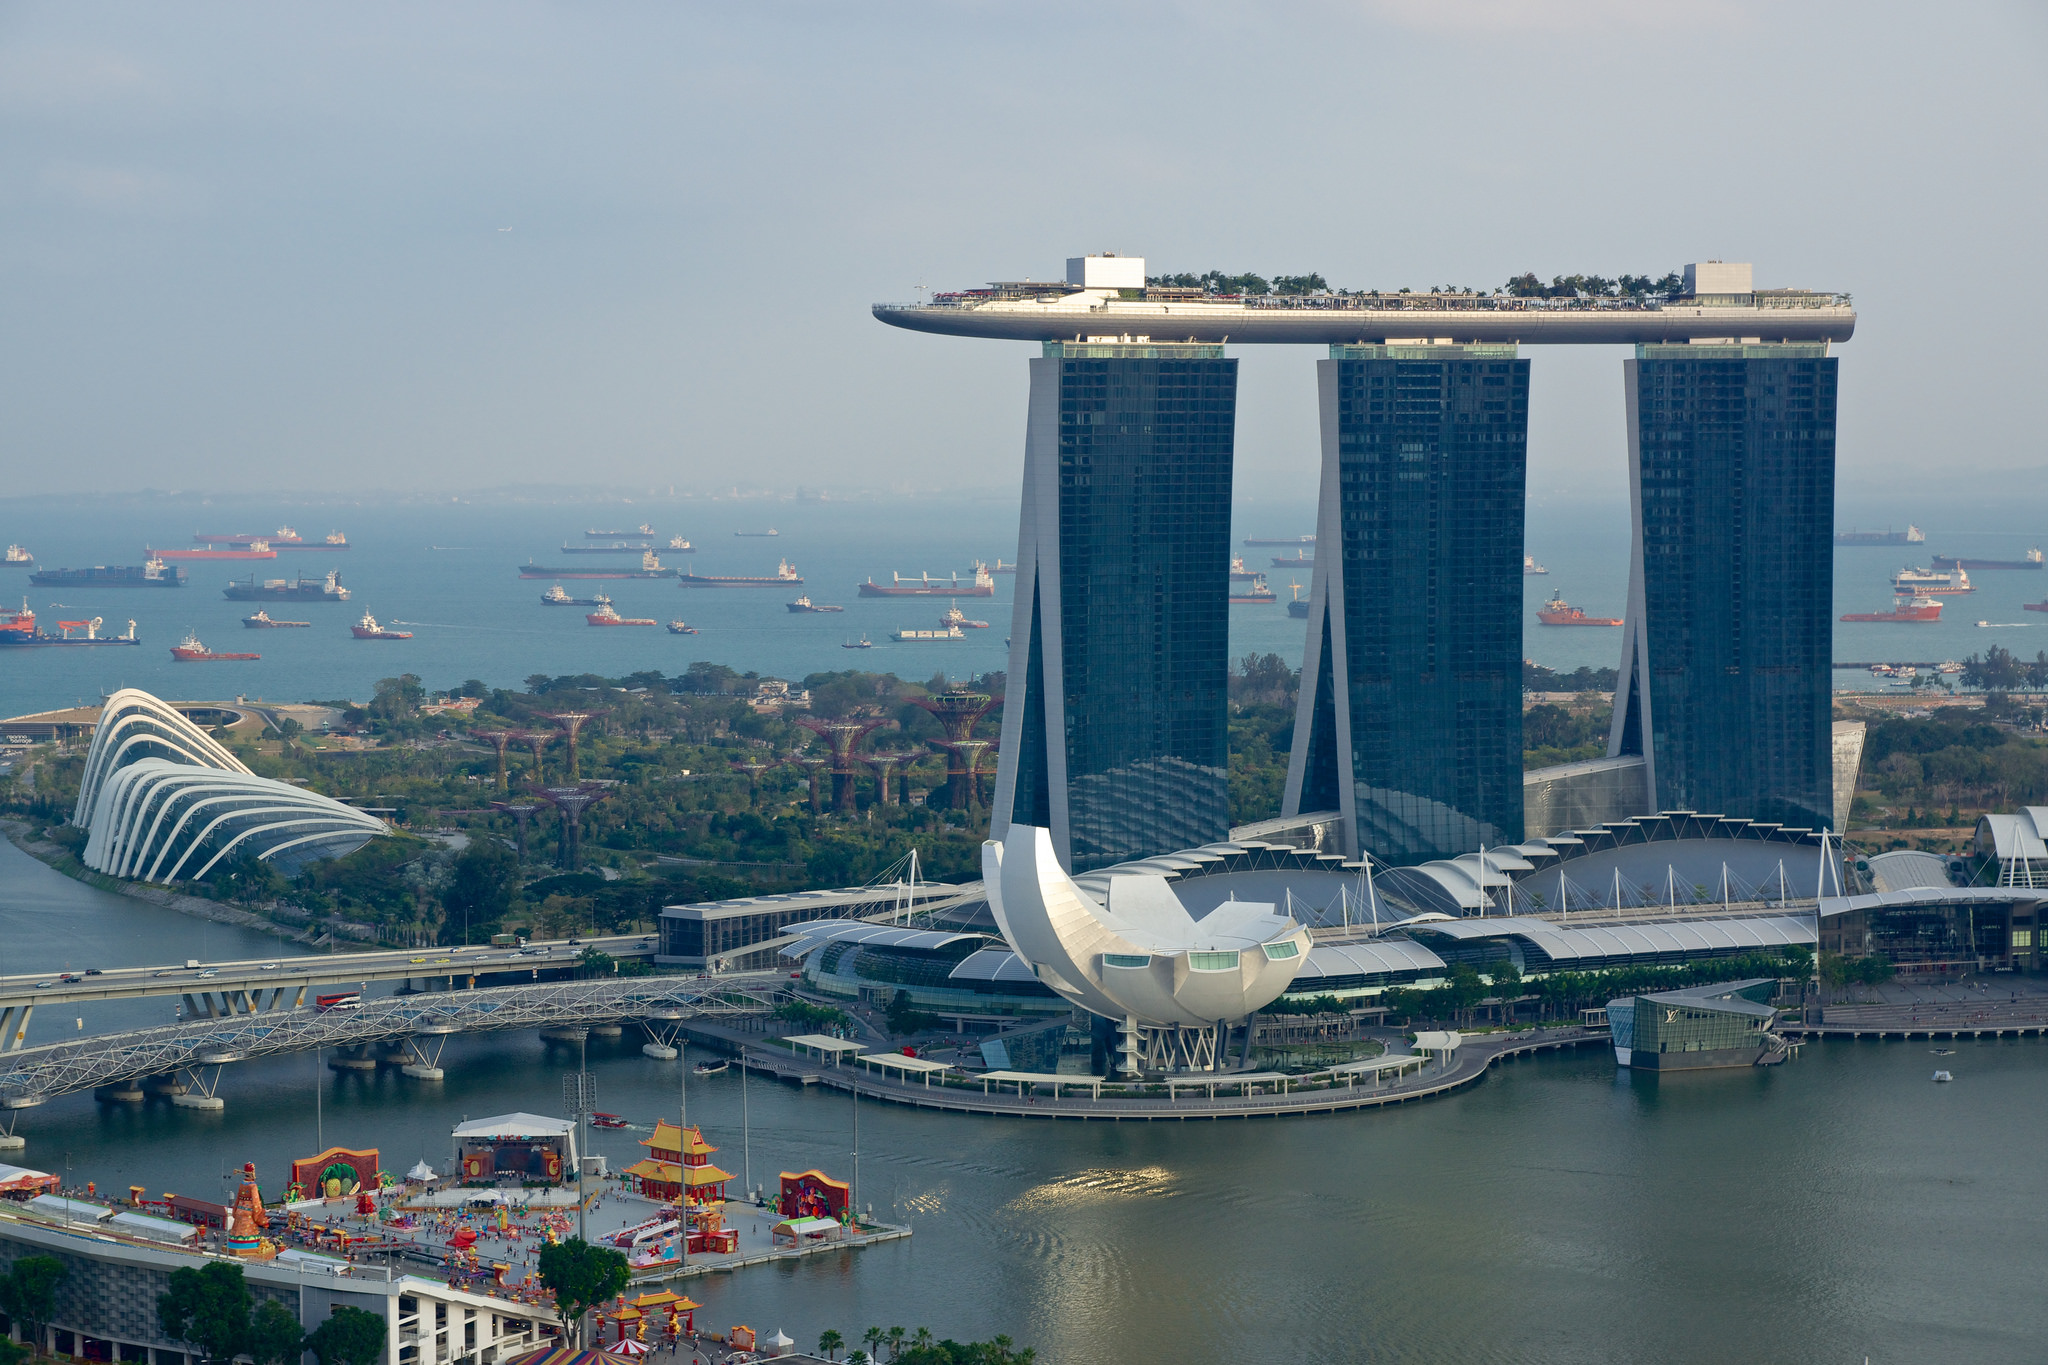 Marina bay sands hotel and casino complex in singapore soiree poker nantes